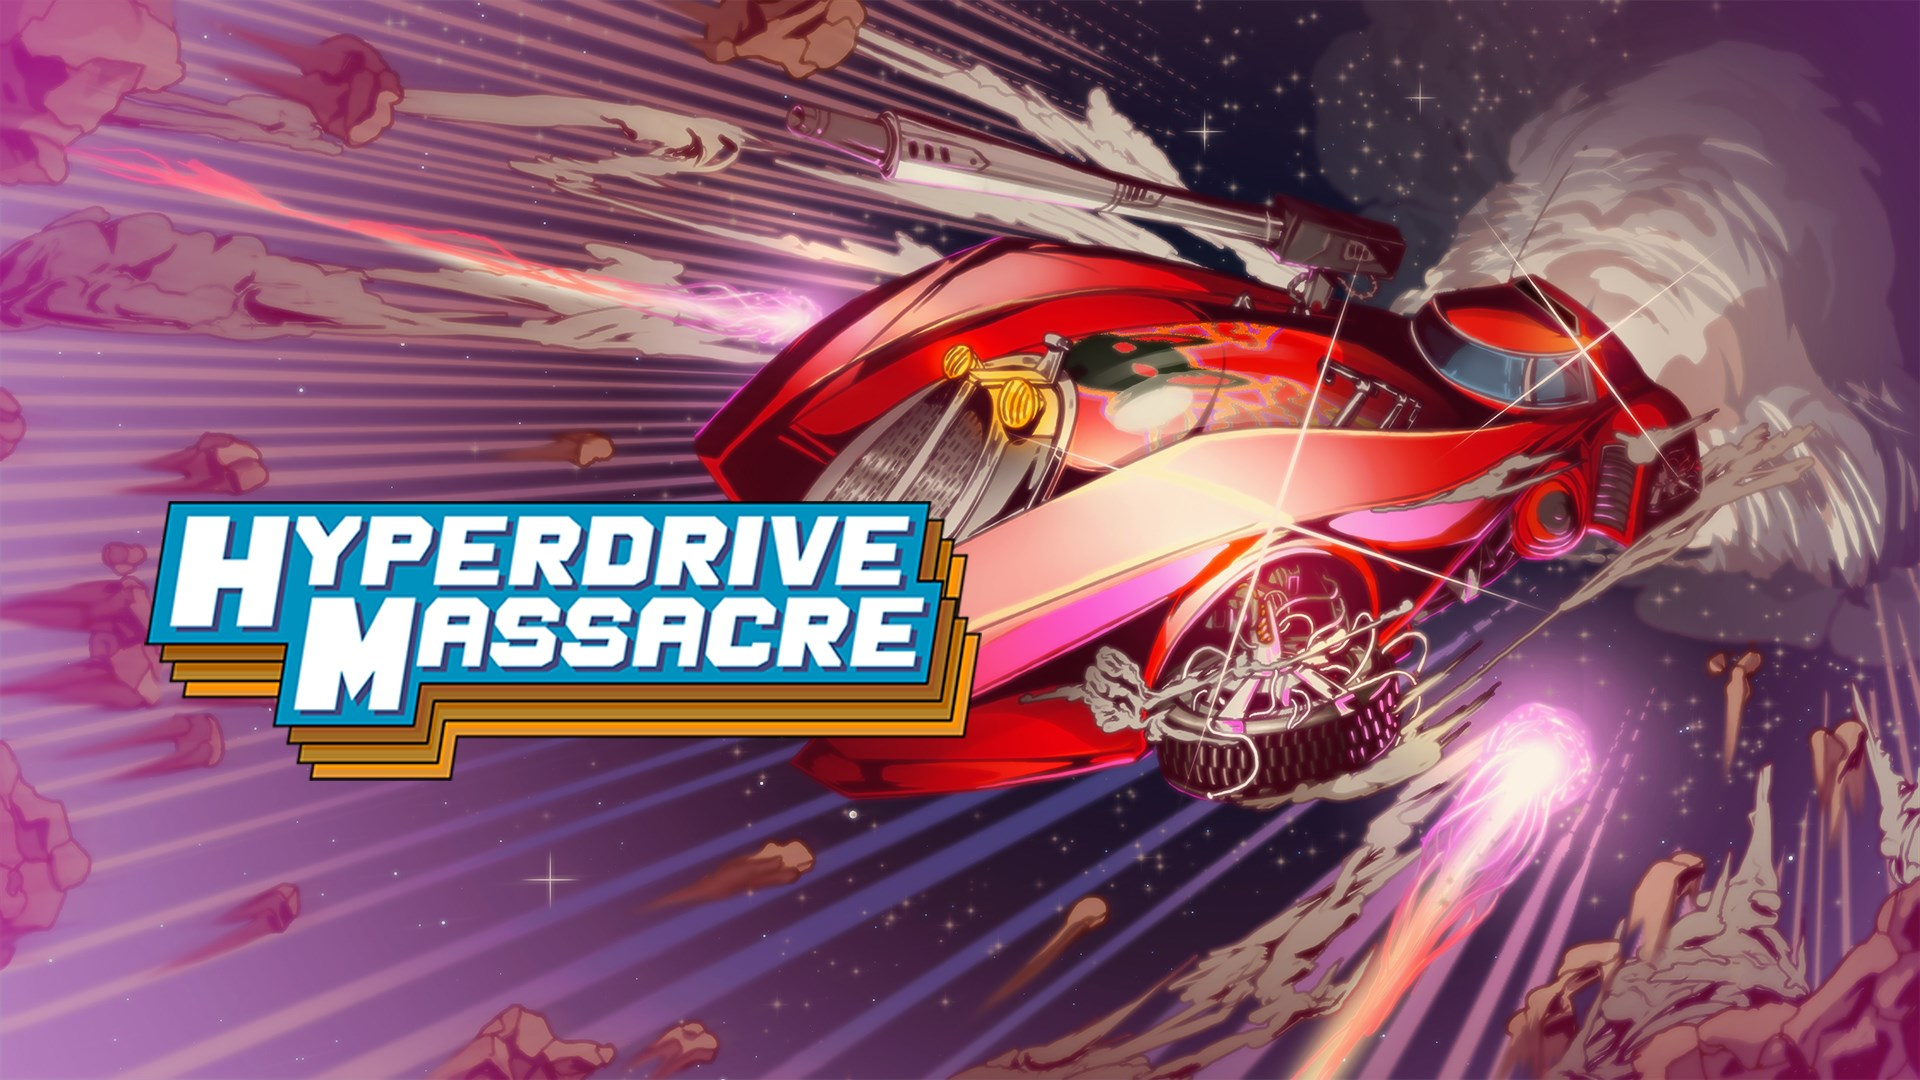 Hyperdrive Massacre